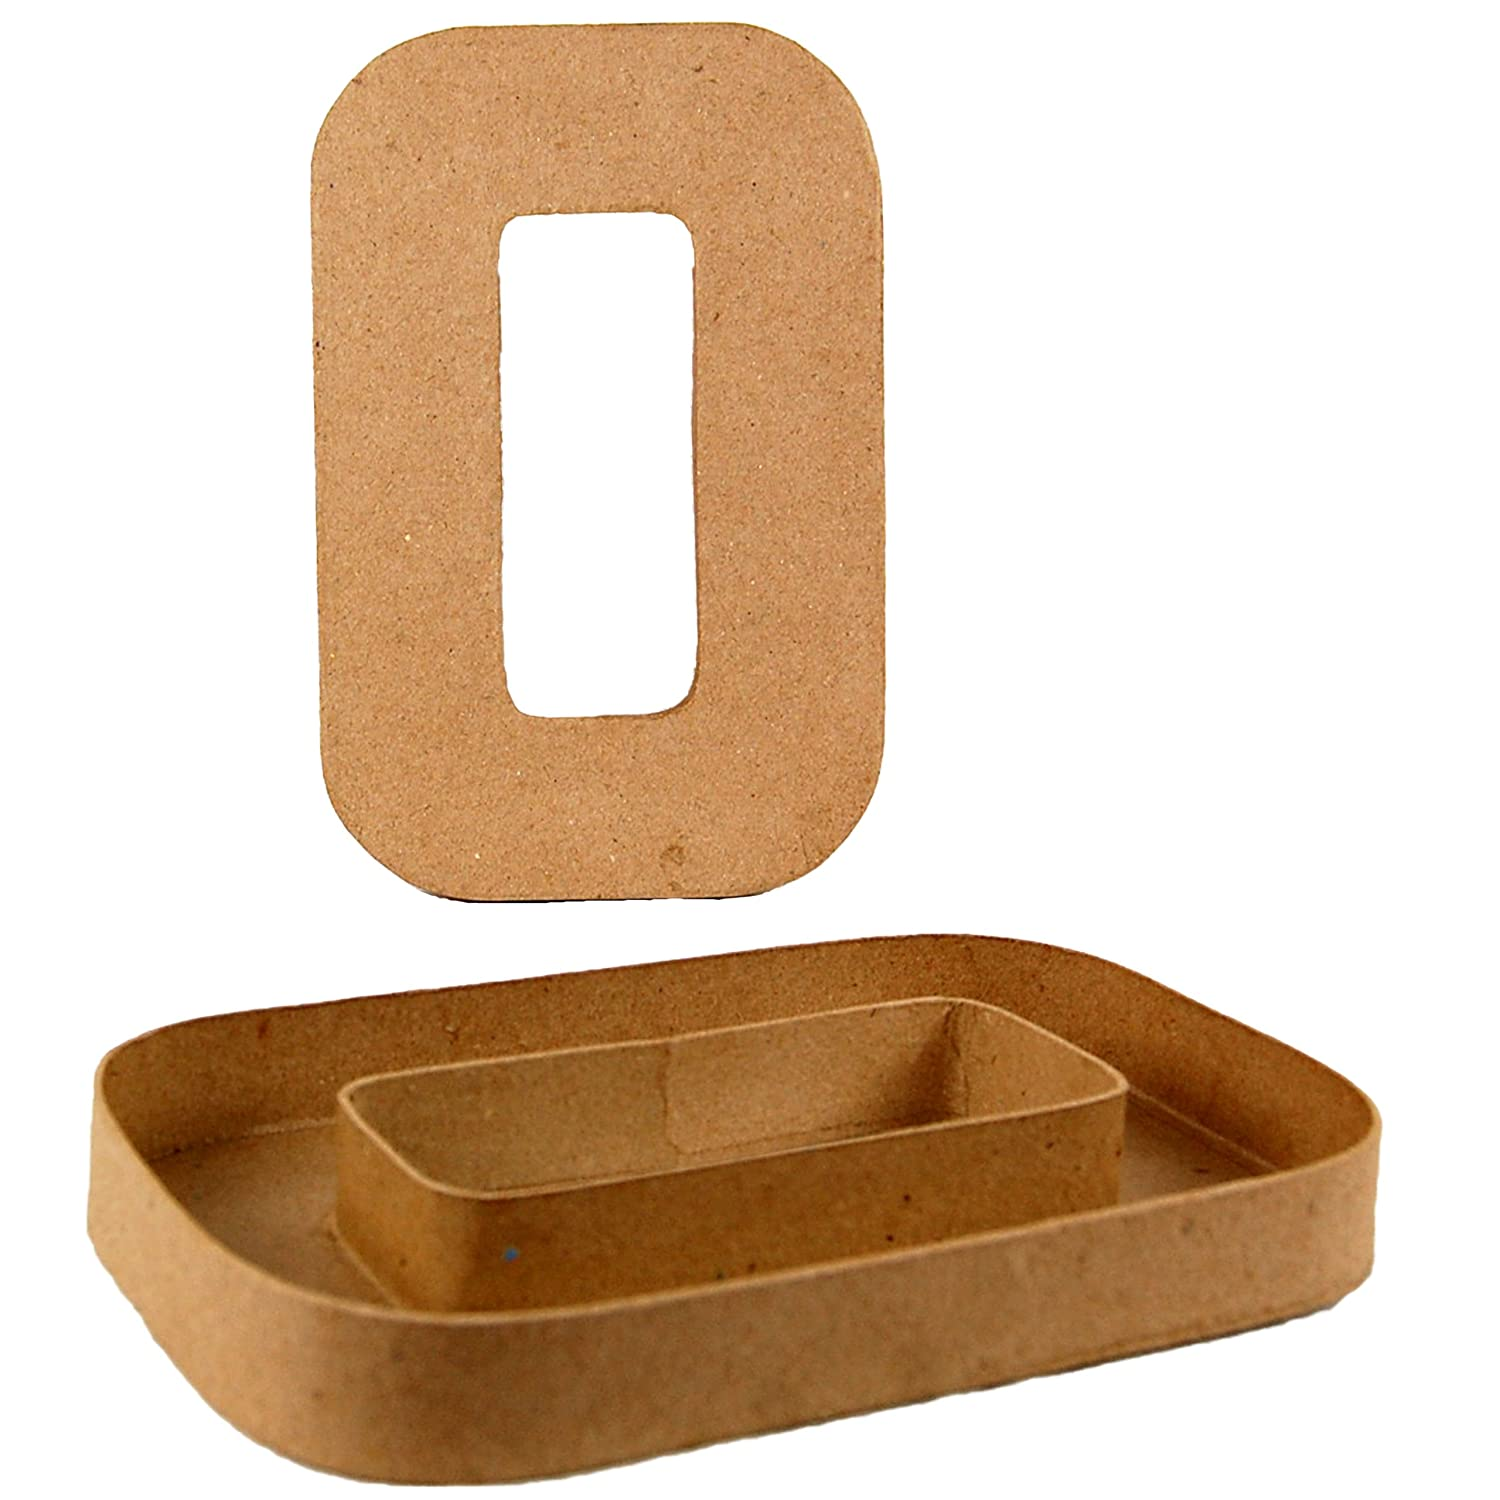 Country Love Crafts 8.25-inch/ 20.5cm Letter O Shaped Box Papier Mache CLSNGP2315